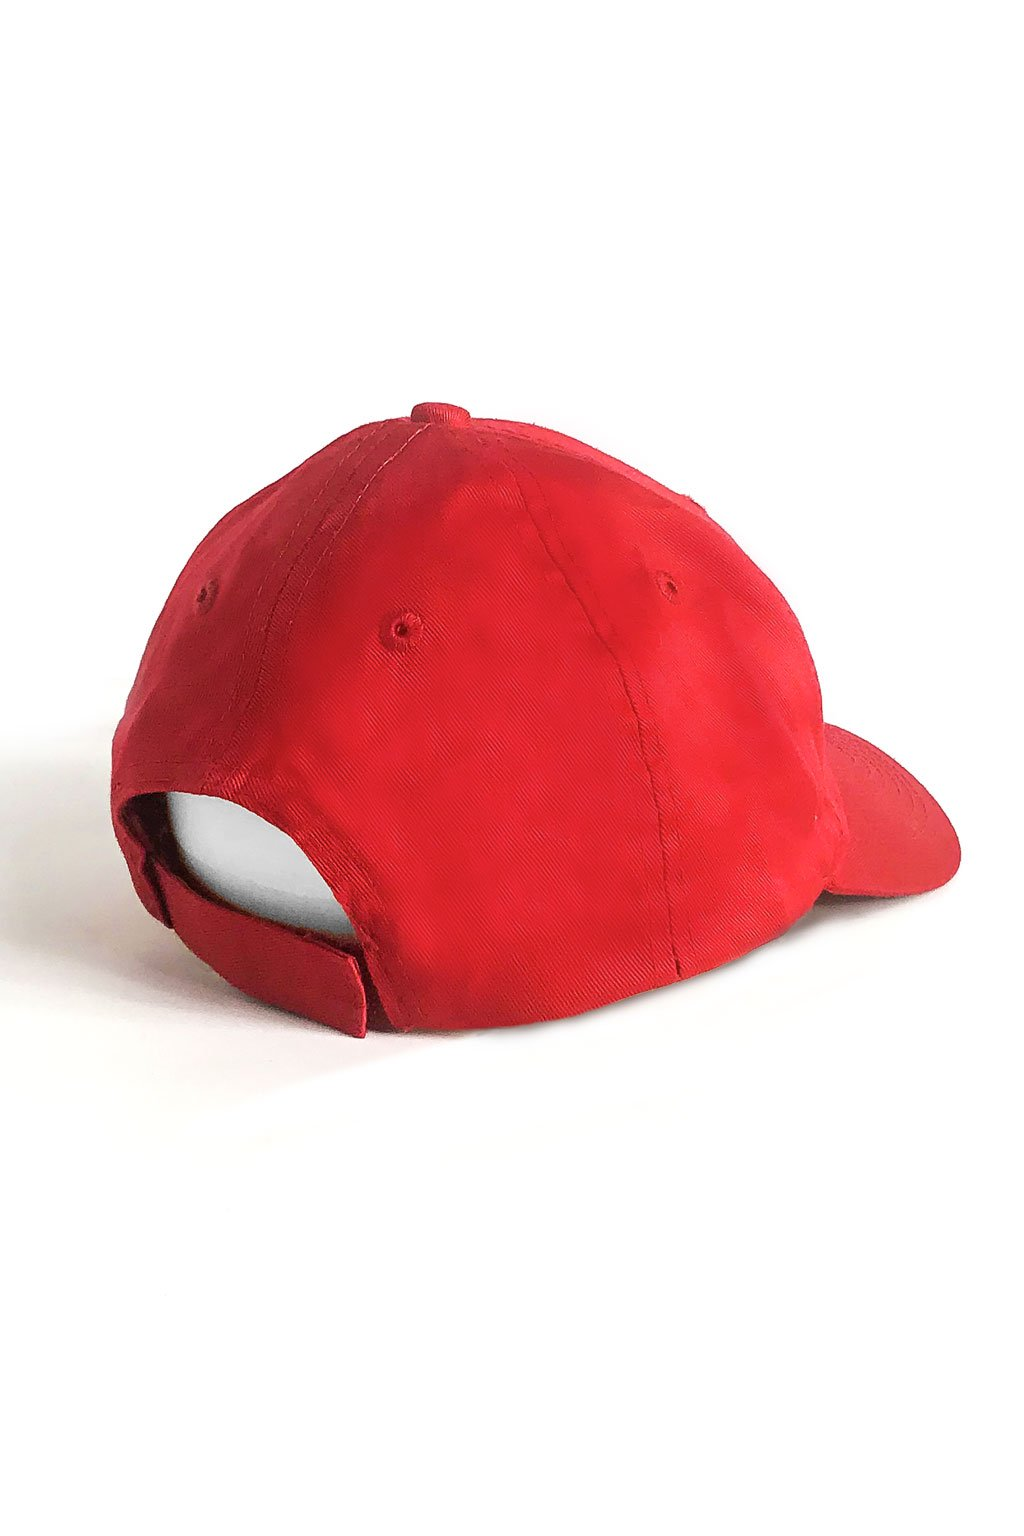 Red Logo Cap - Port 213.com